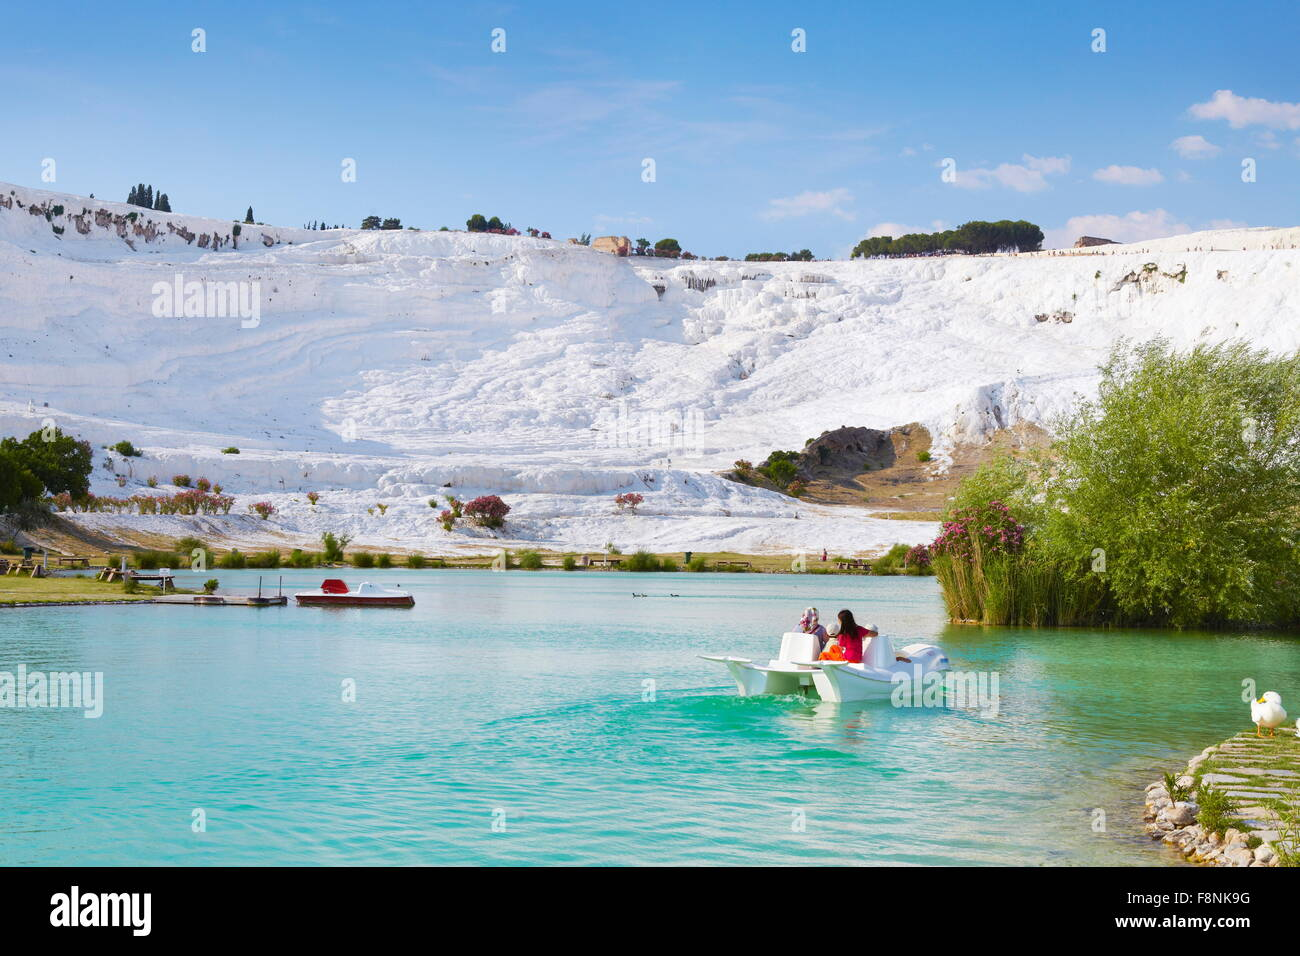 Pamukkale, lake and recreational area at the foot of the limestone terraces, Turkey, Unesco - Stock Image